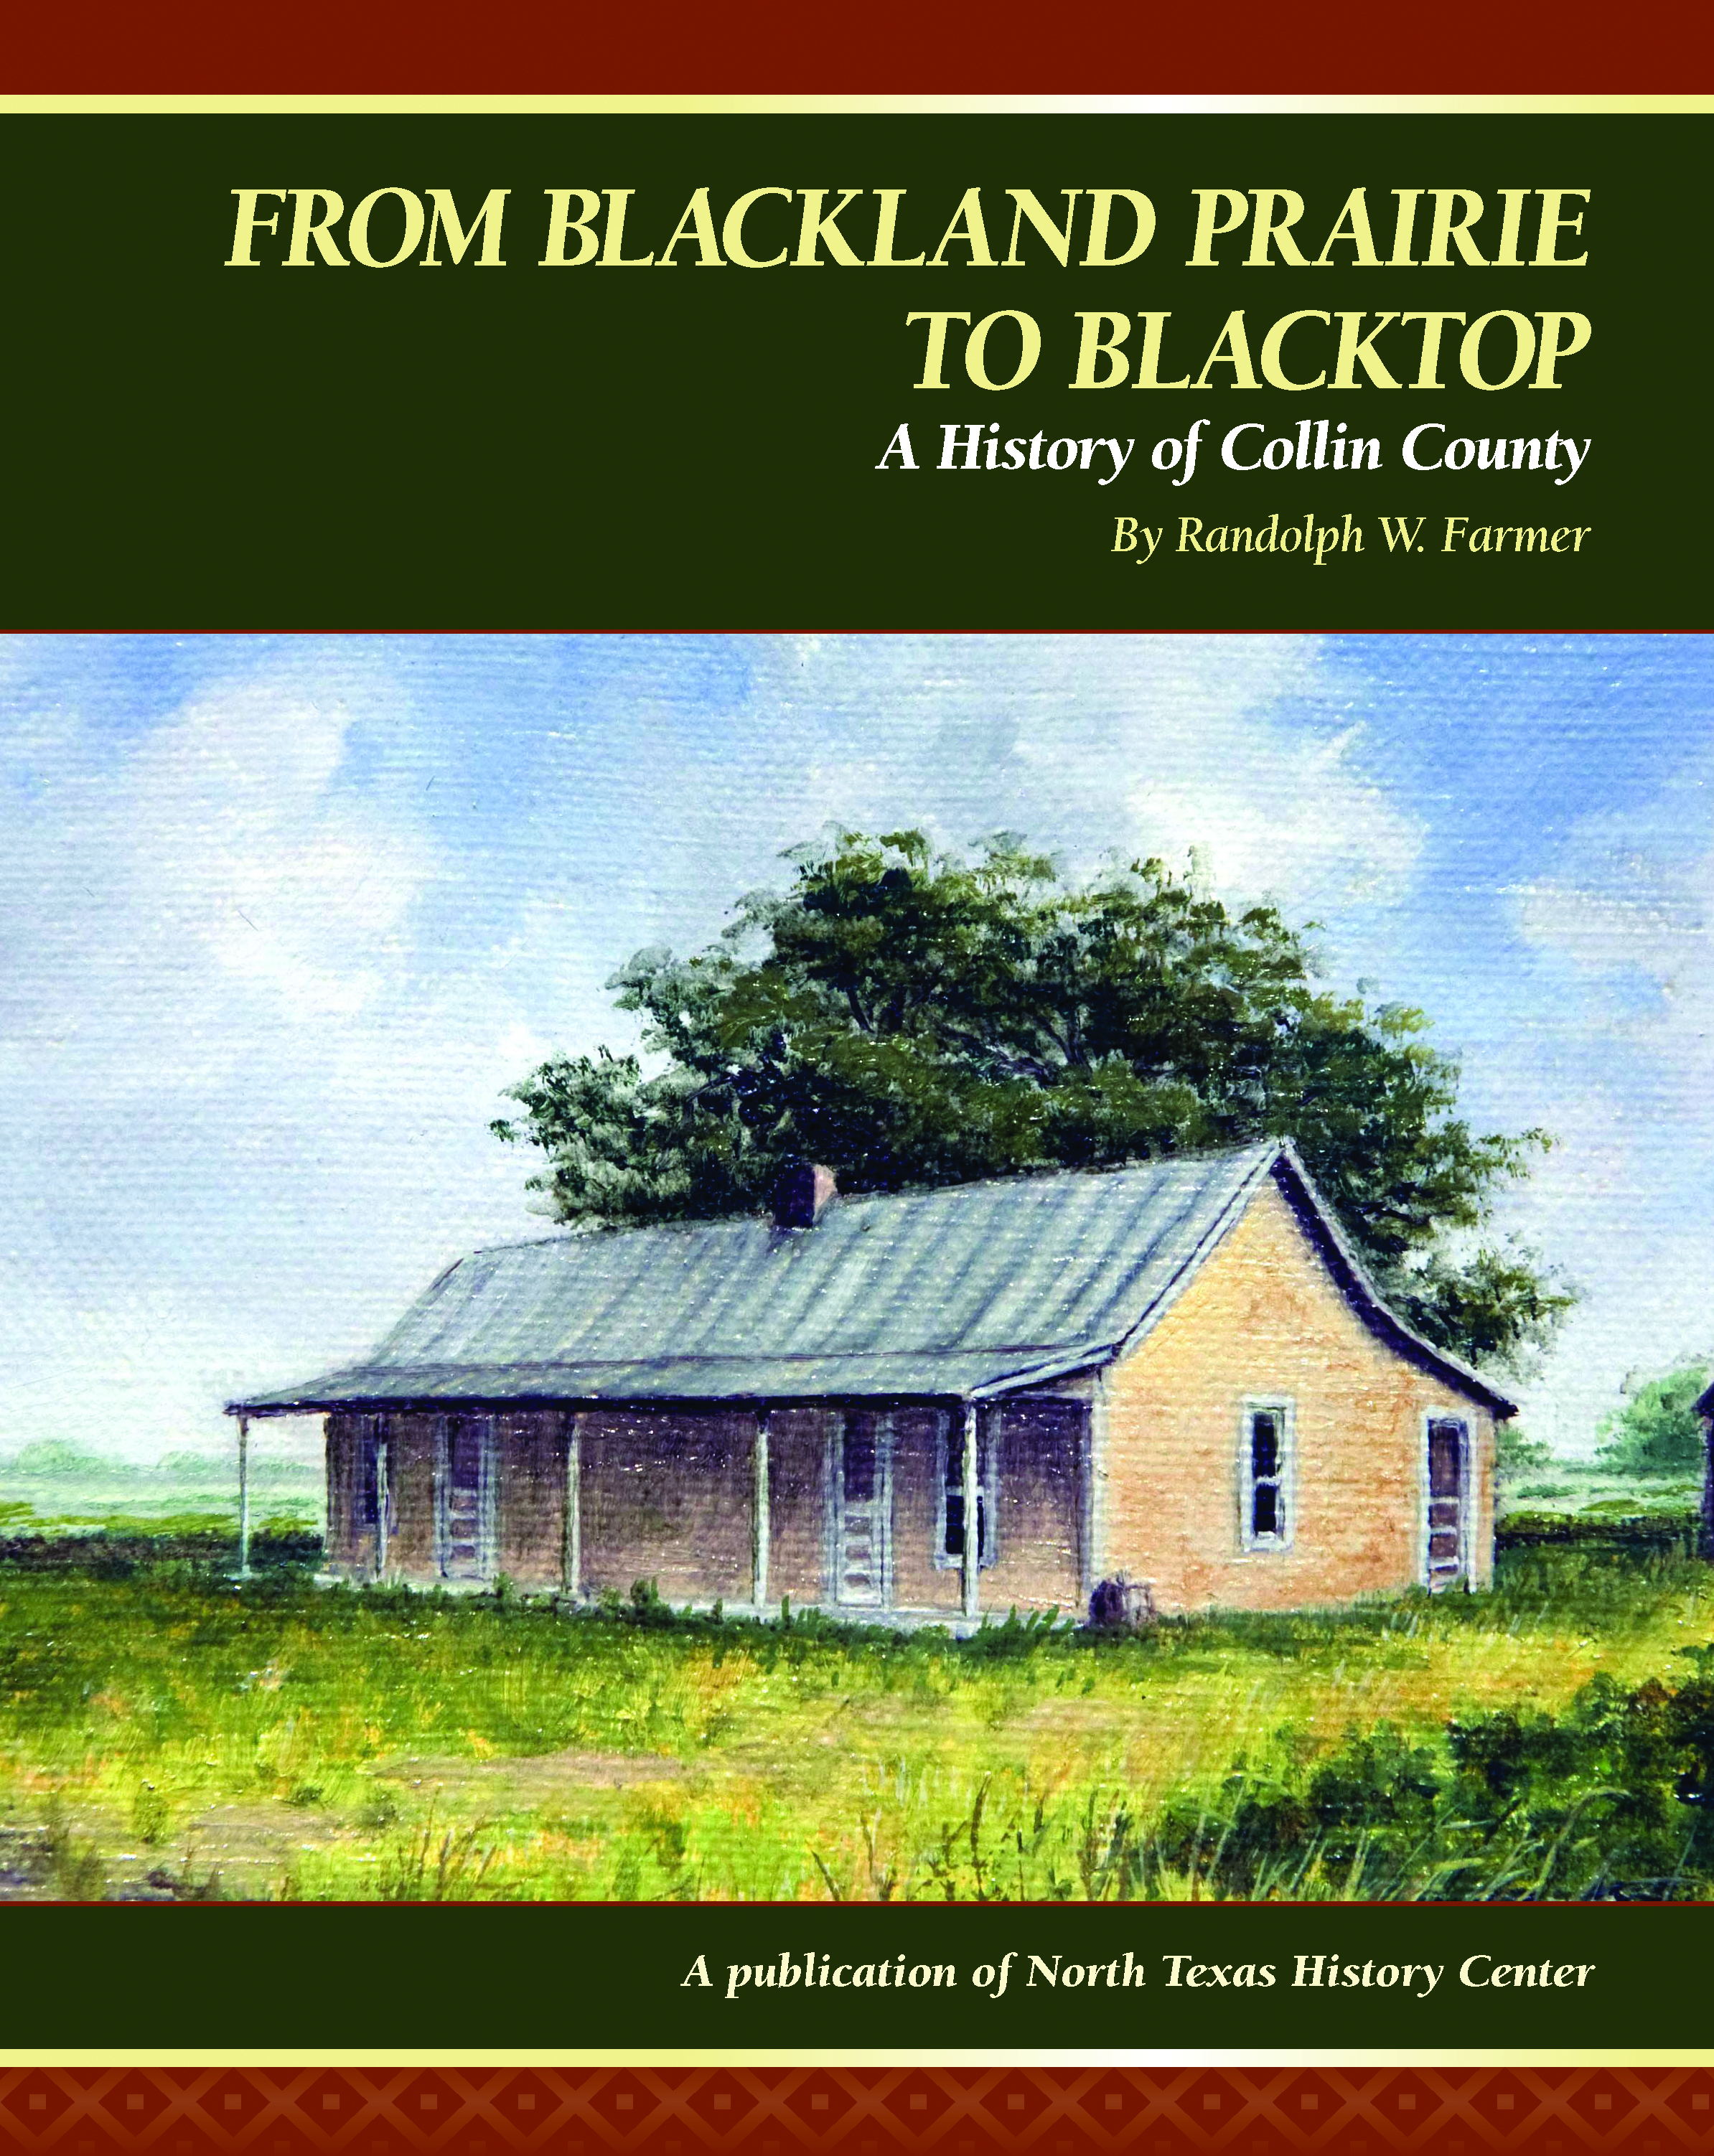 From Blackland Prairie to Blacktop